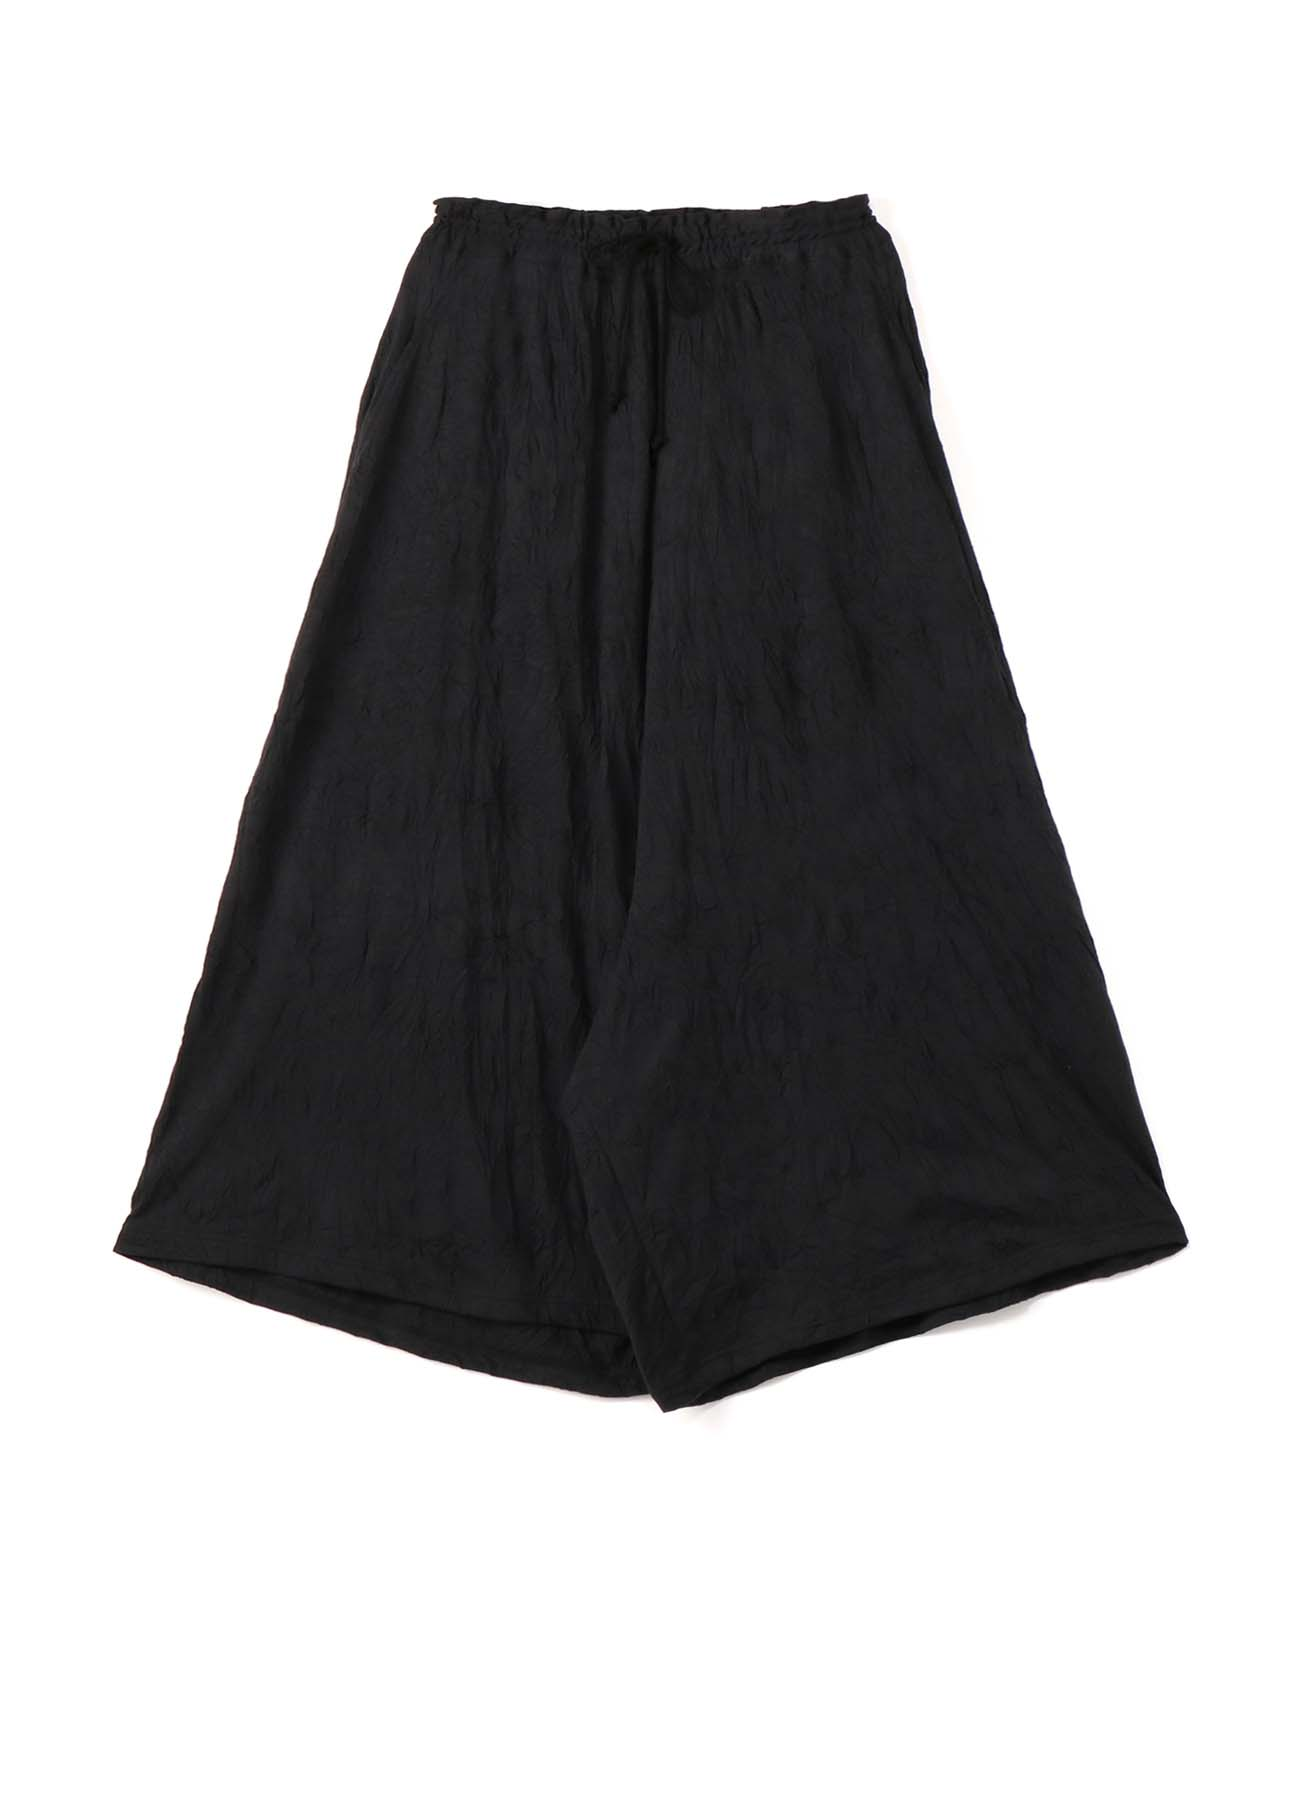 30/- T/C PS WRINKLED GATHER WAIST STRING PANTS